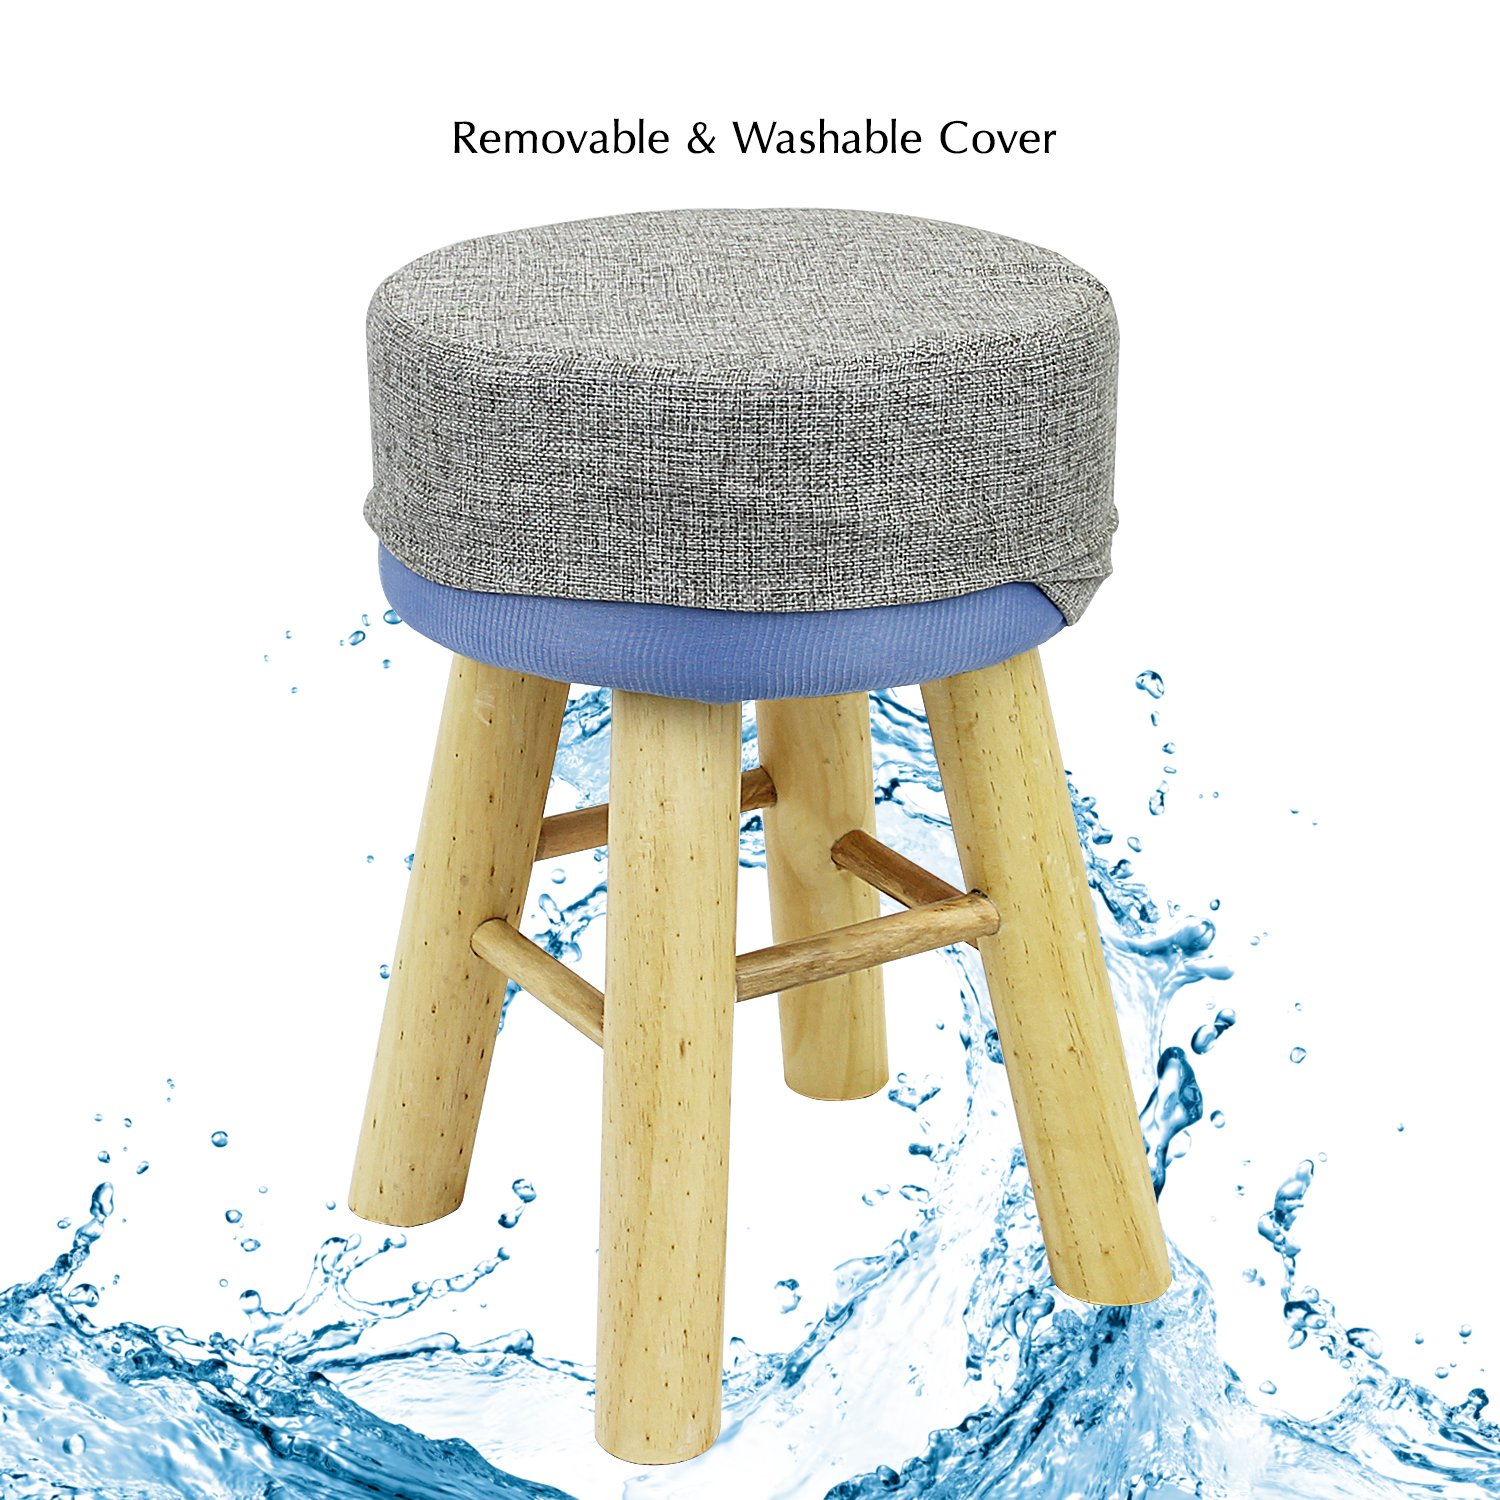 DL furniture – Round Ottoman Foot Stool, 4 Leg Stands Round Shape, Long Leg Linen Fabric, Gray Cover